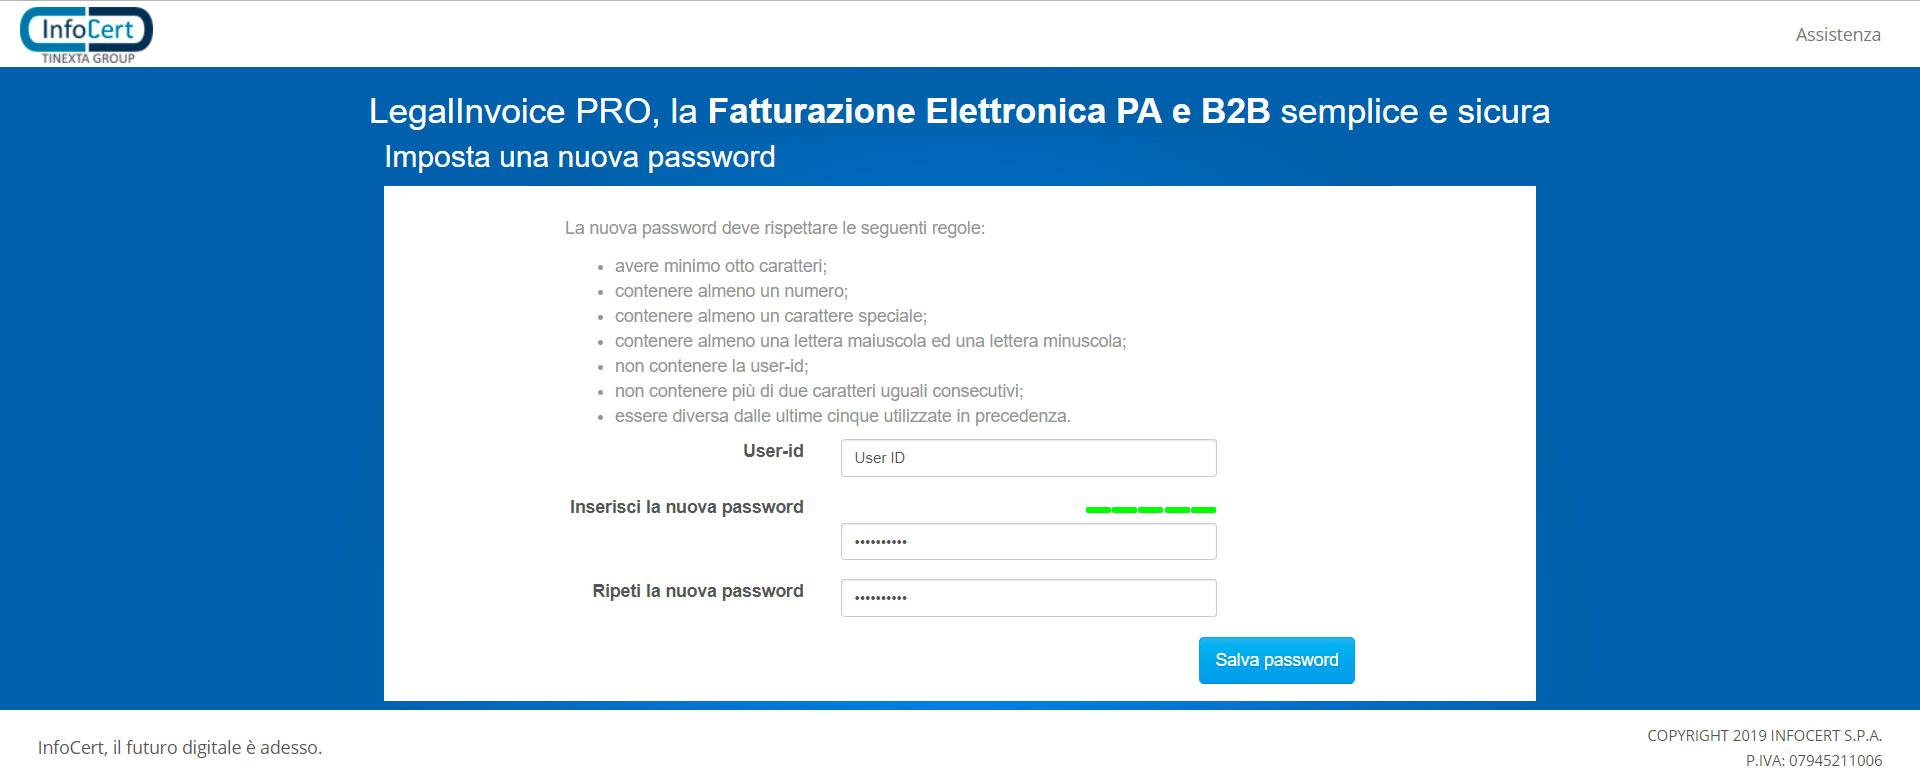 Nuova password